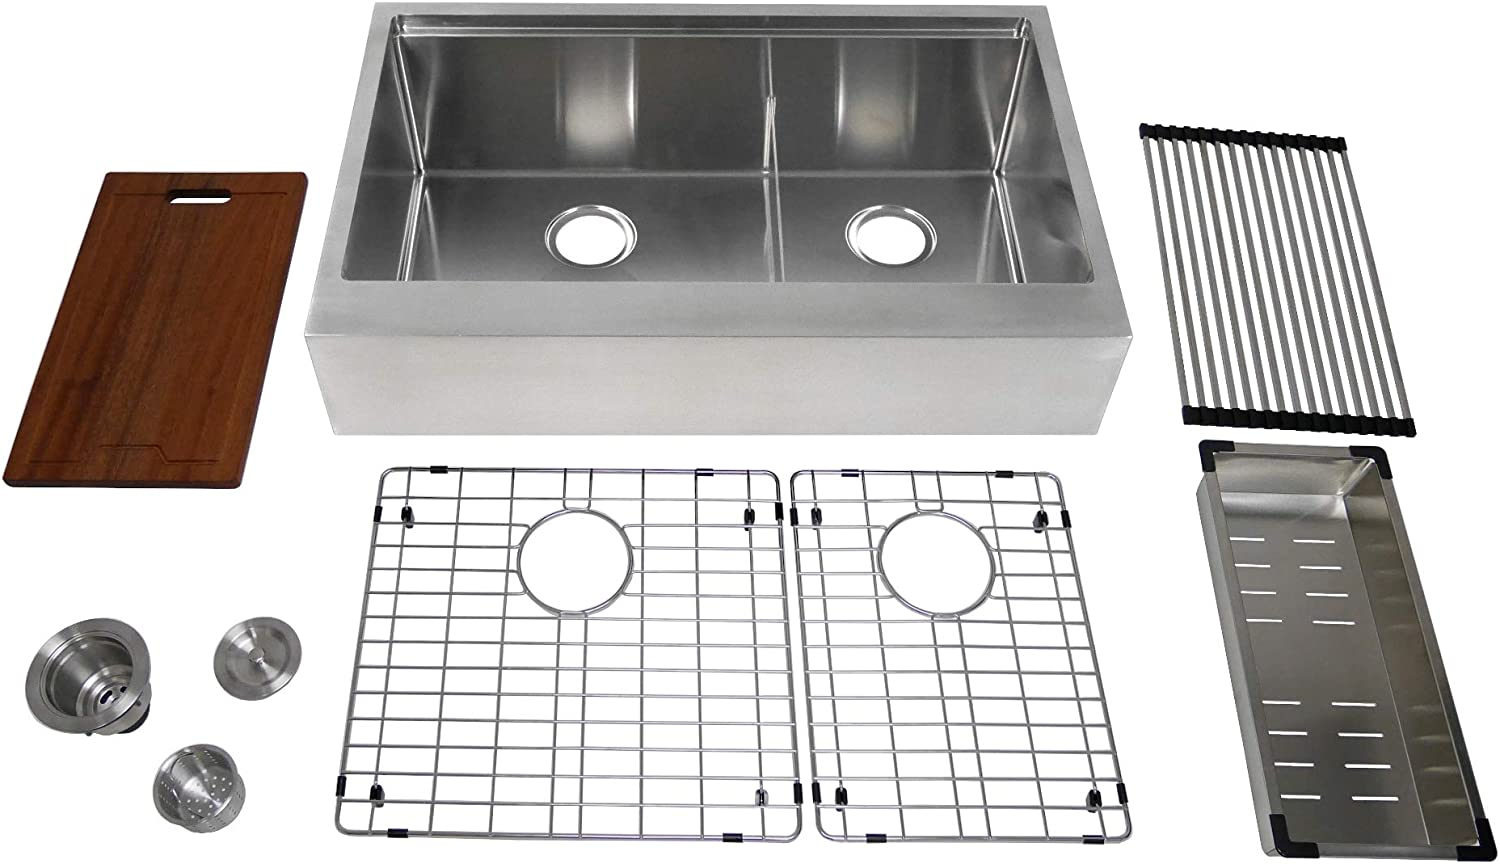 Auric Sinks 33 Retro-fit Farmhouse 6 Flat Front Apron Low Divide Double 60 40 Ledge Bowl Stainless Steel Kitchen Sink, SFAL-TD-16-33-retro 6040 COMBO